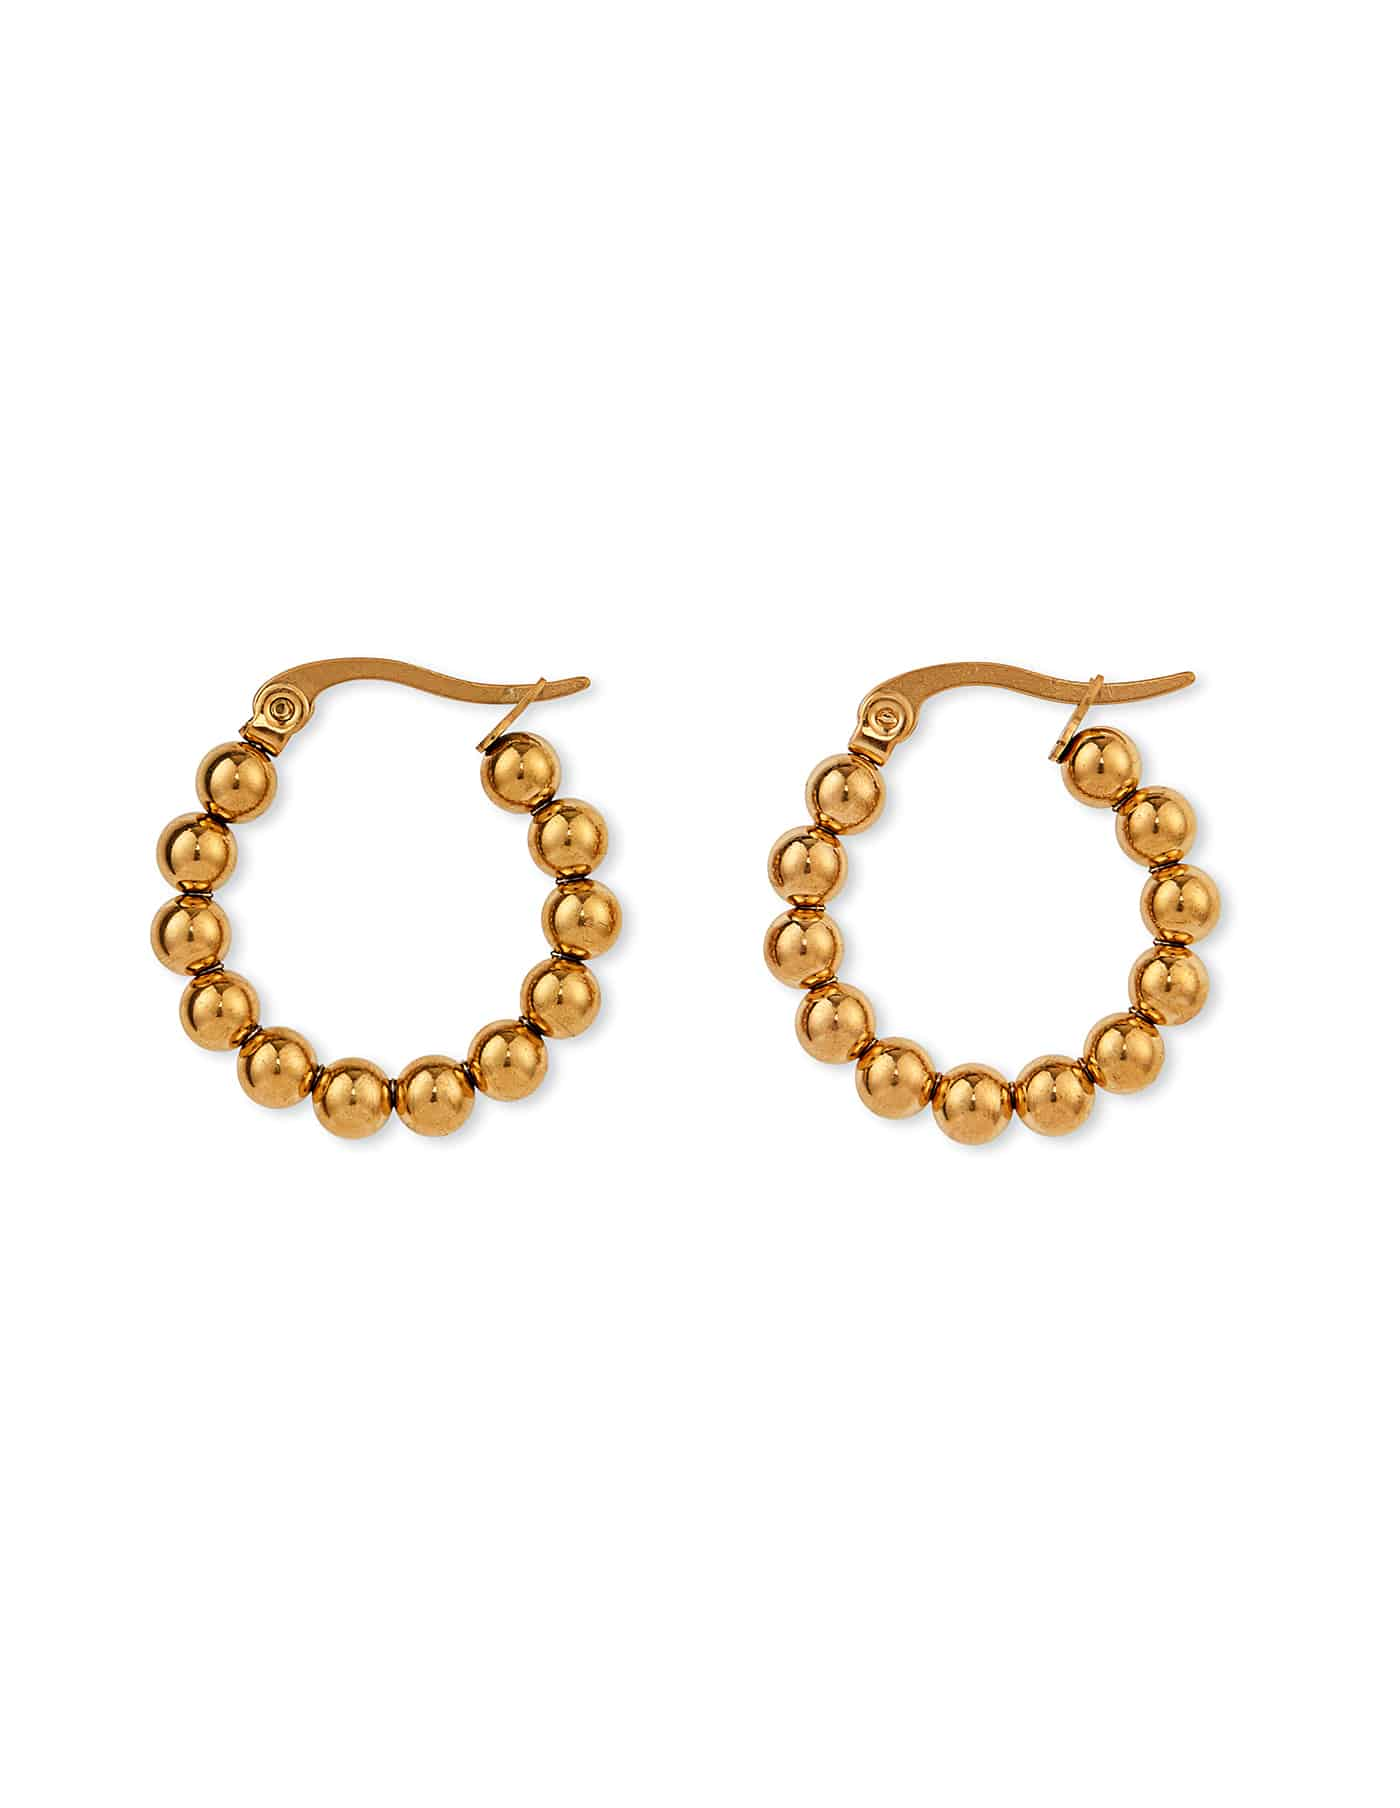 Gold Ball Hoop Earrings, Forever Lasting